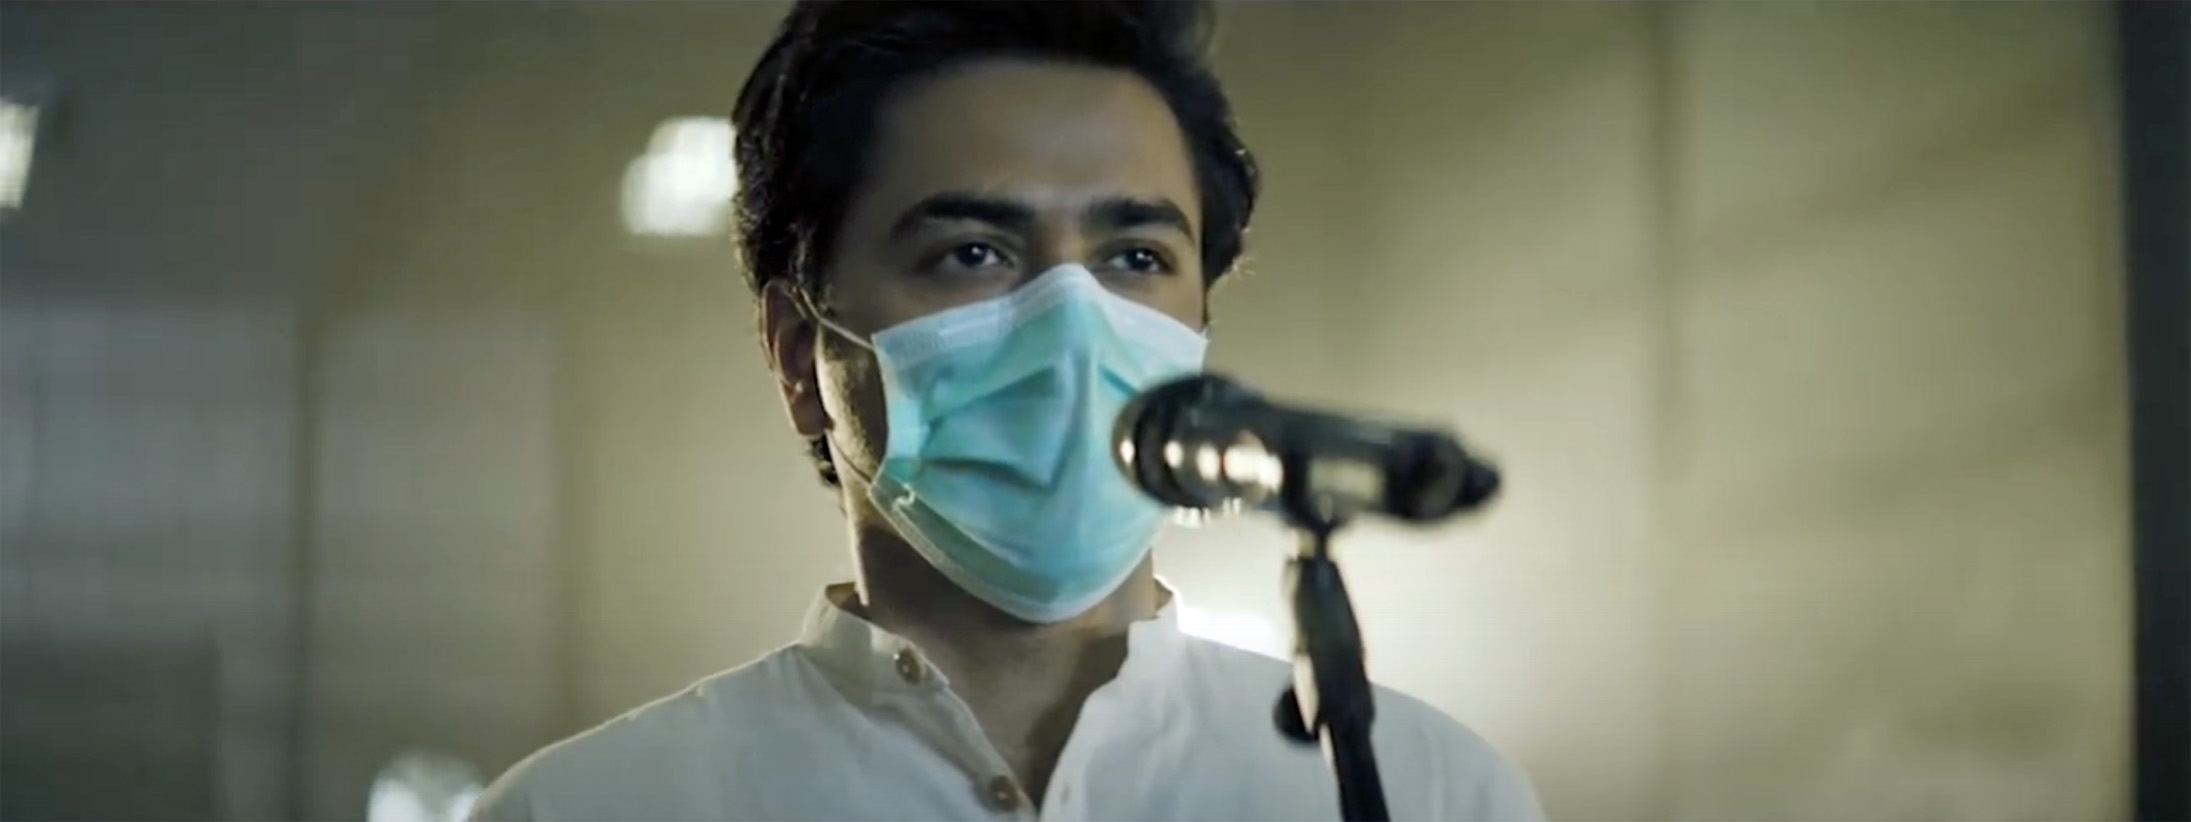 UniLever Pakistan launch National Anthem film sung through face masks for Independence Day via BBDO Pakistan